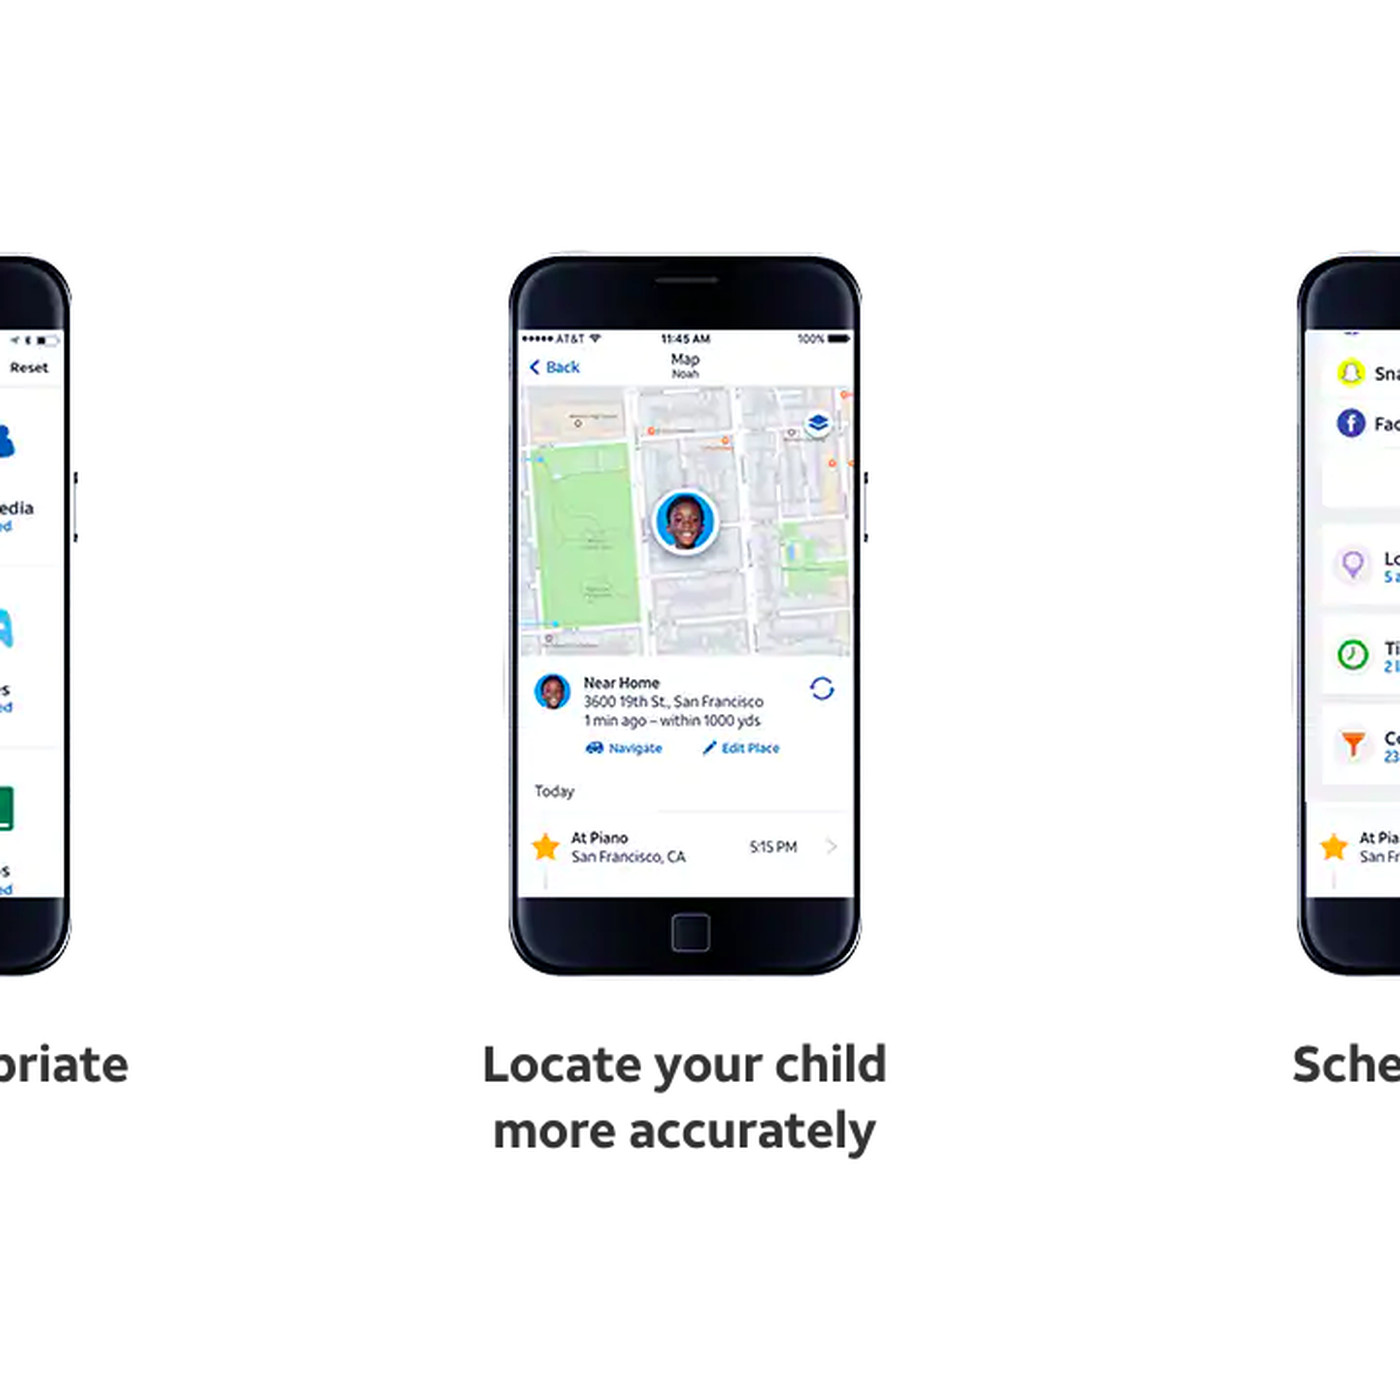 AT&T is launching a new app to manage parental control